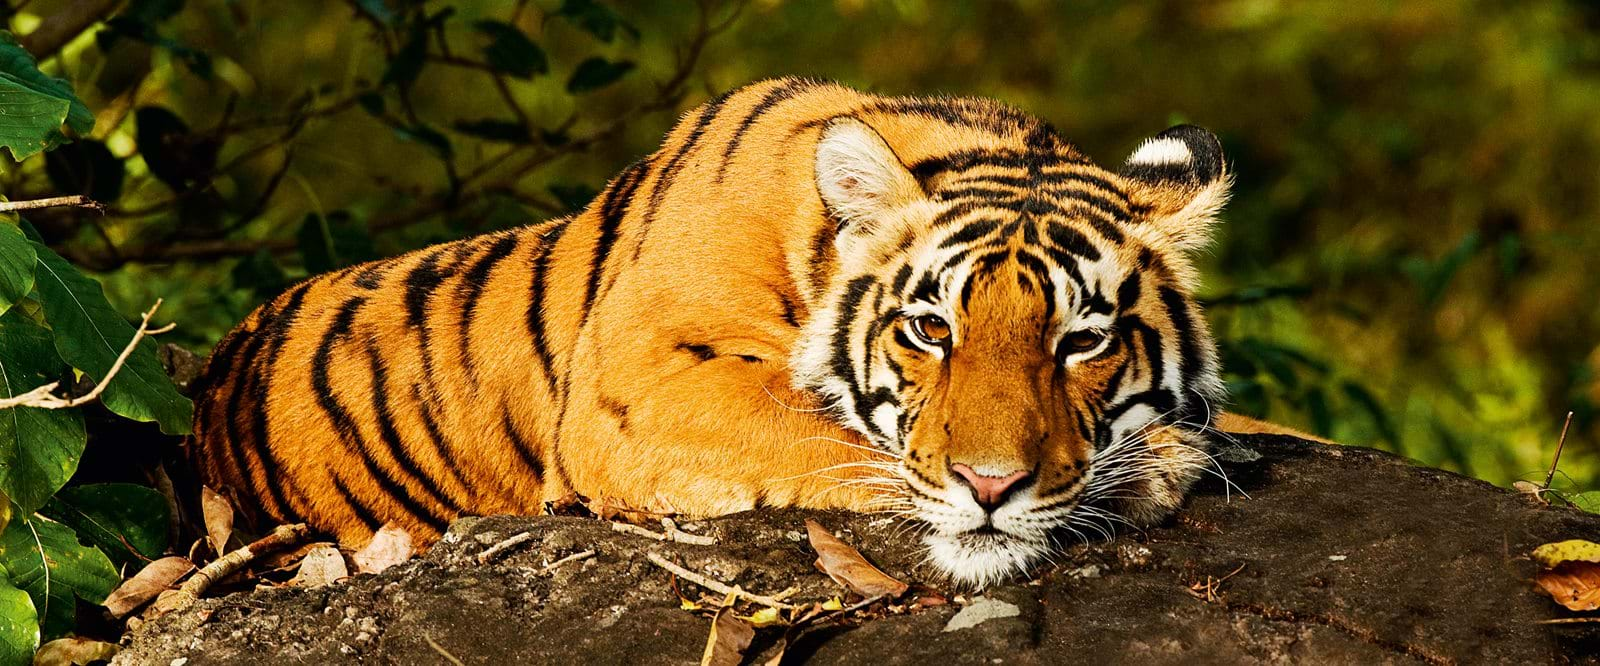 Tiger, Tiger safari, Wildlife, India